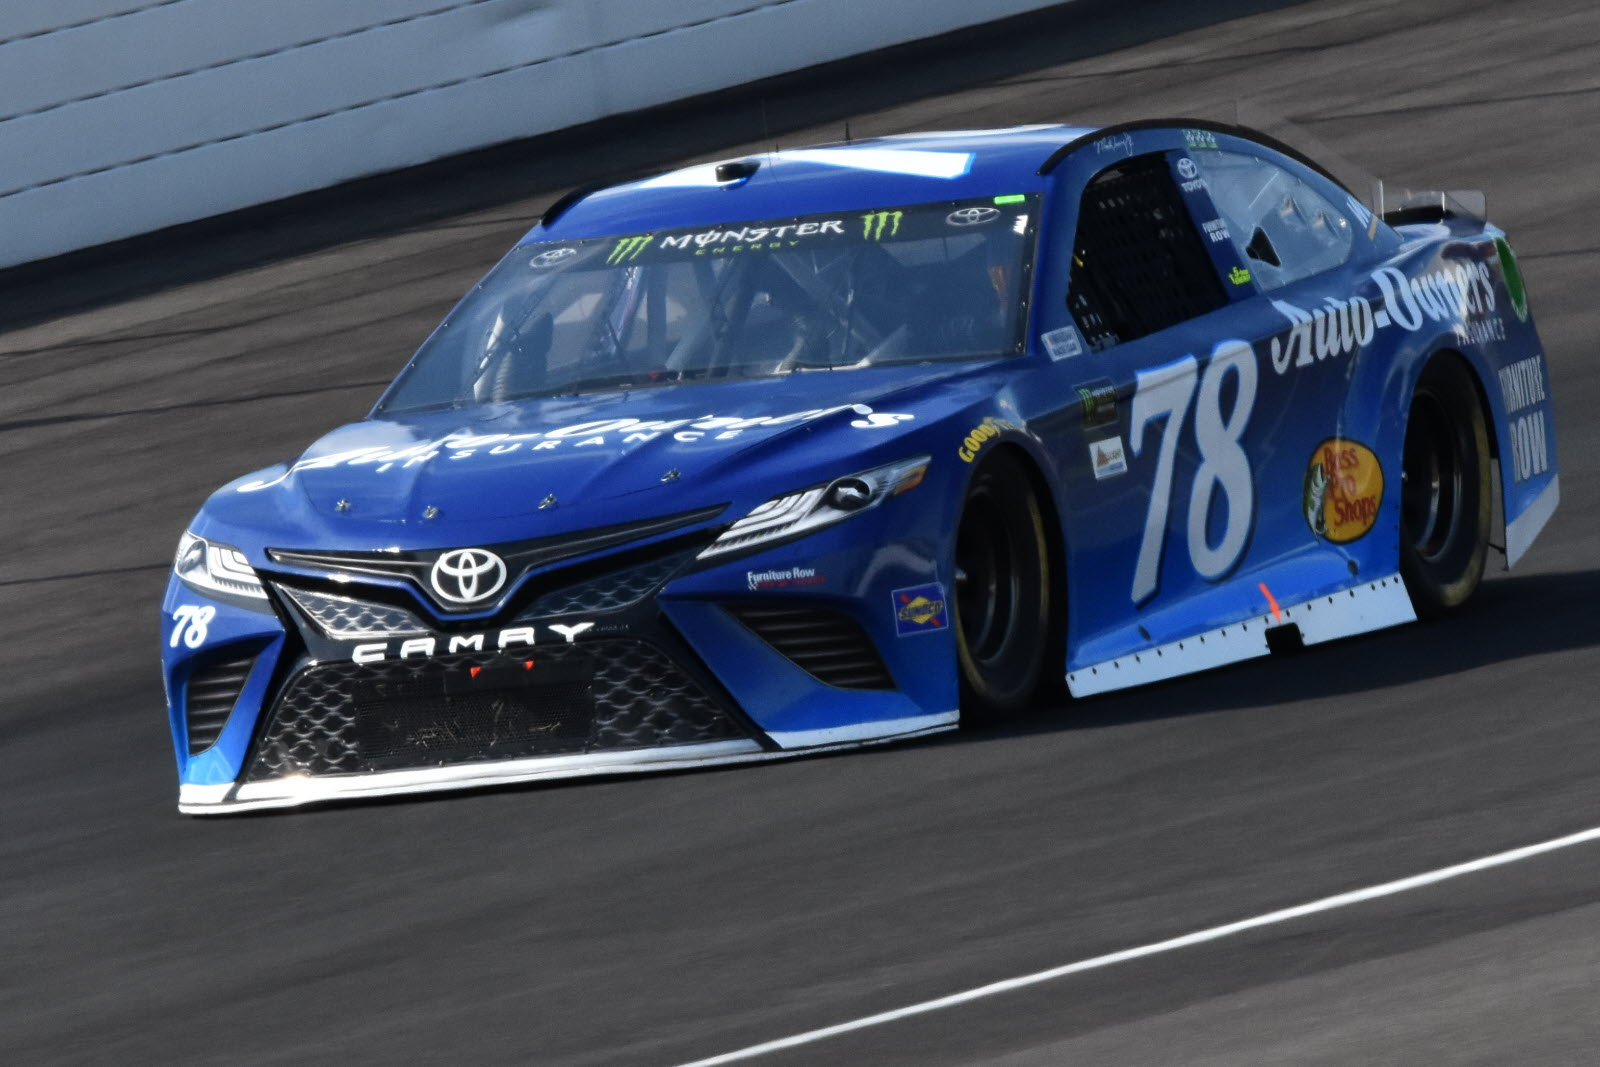 Hamlin Victorious as Truex Claims Regular Season Championship